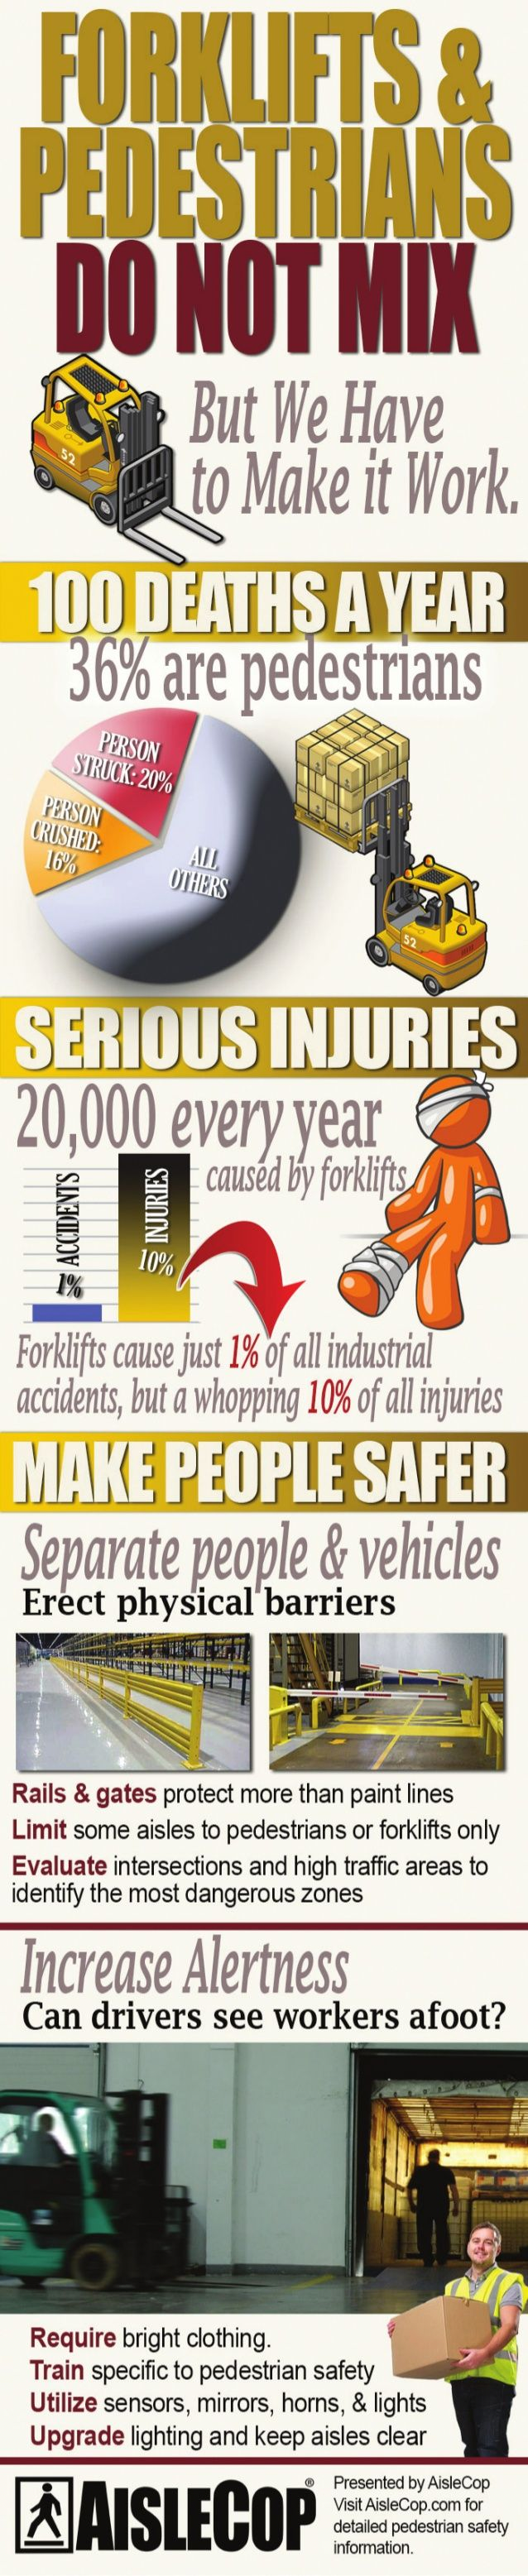 Safety with forklifts safetyfirst forklifts